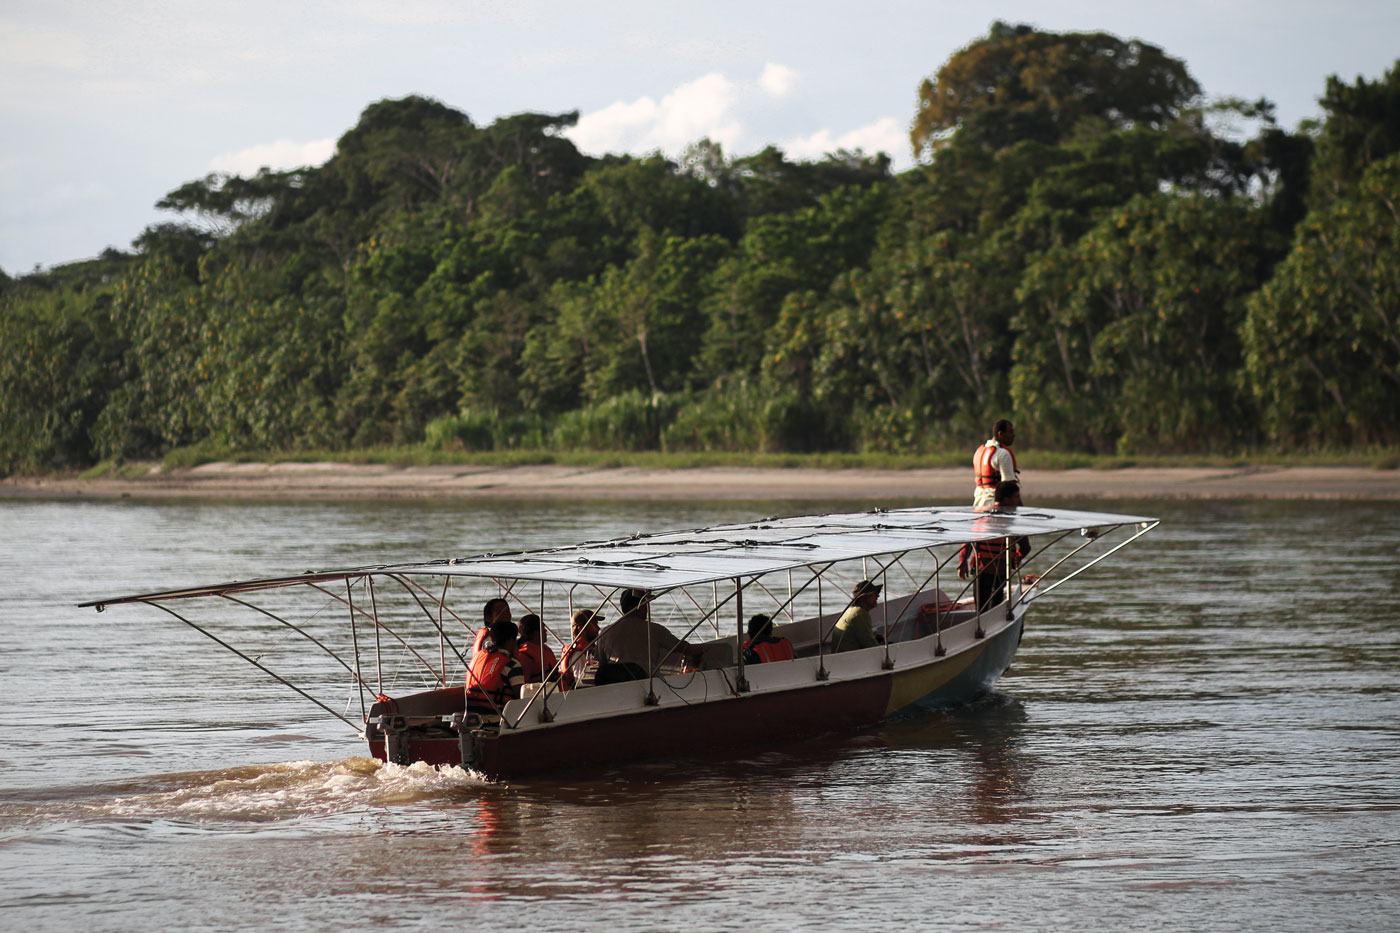 #Amazon2030 Initiative - Replicate community solar energy systems regionally and across the Amazon River Basin